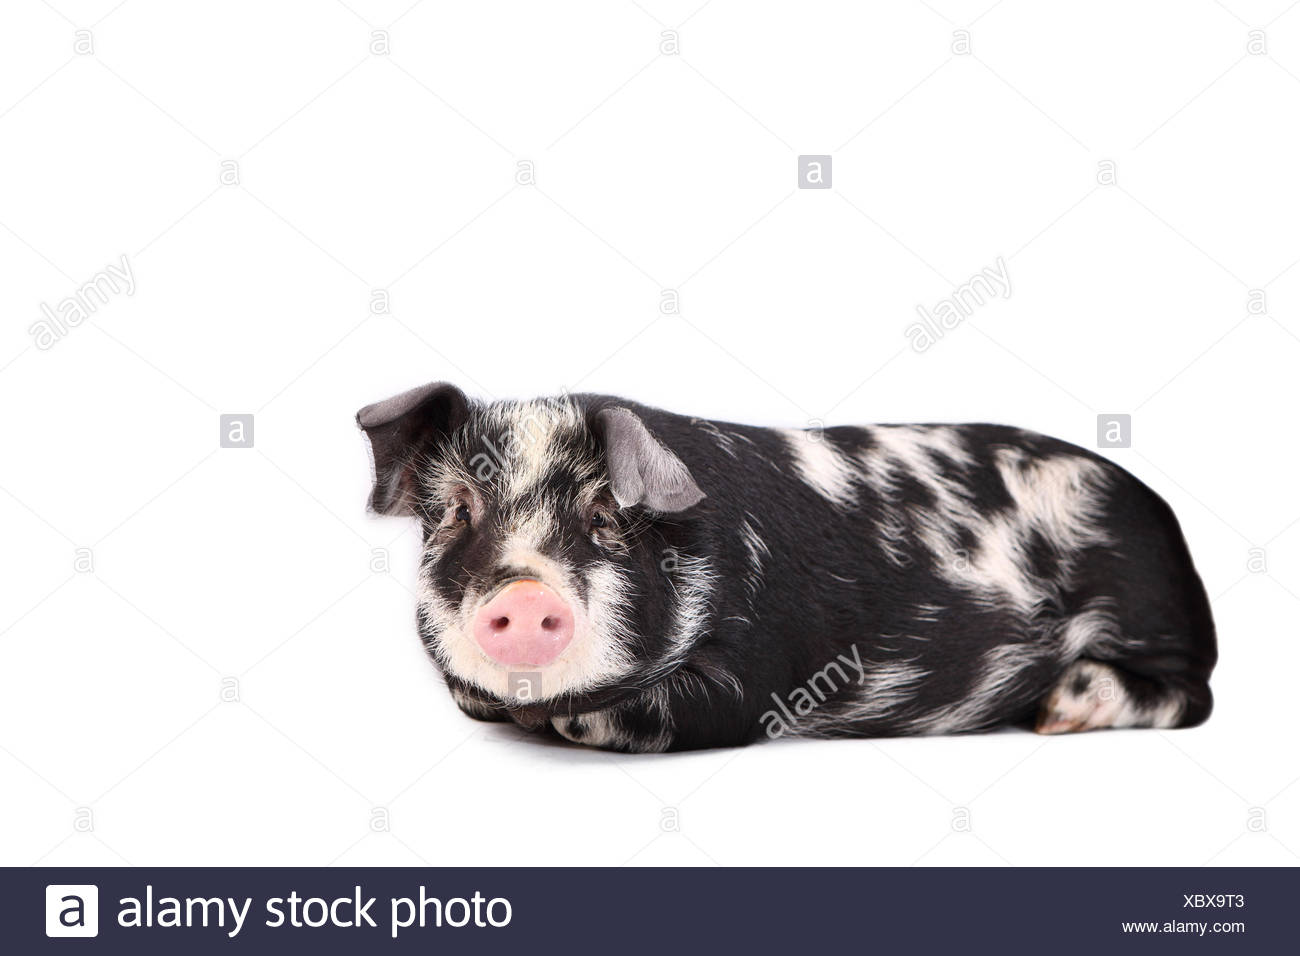 Turopolje Pig. Piglet lying. Studio picture against a white background. Germany Stock Photo